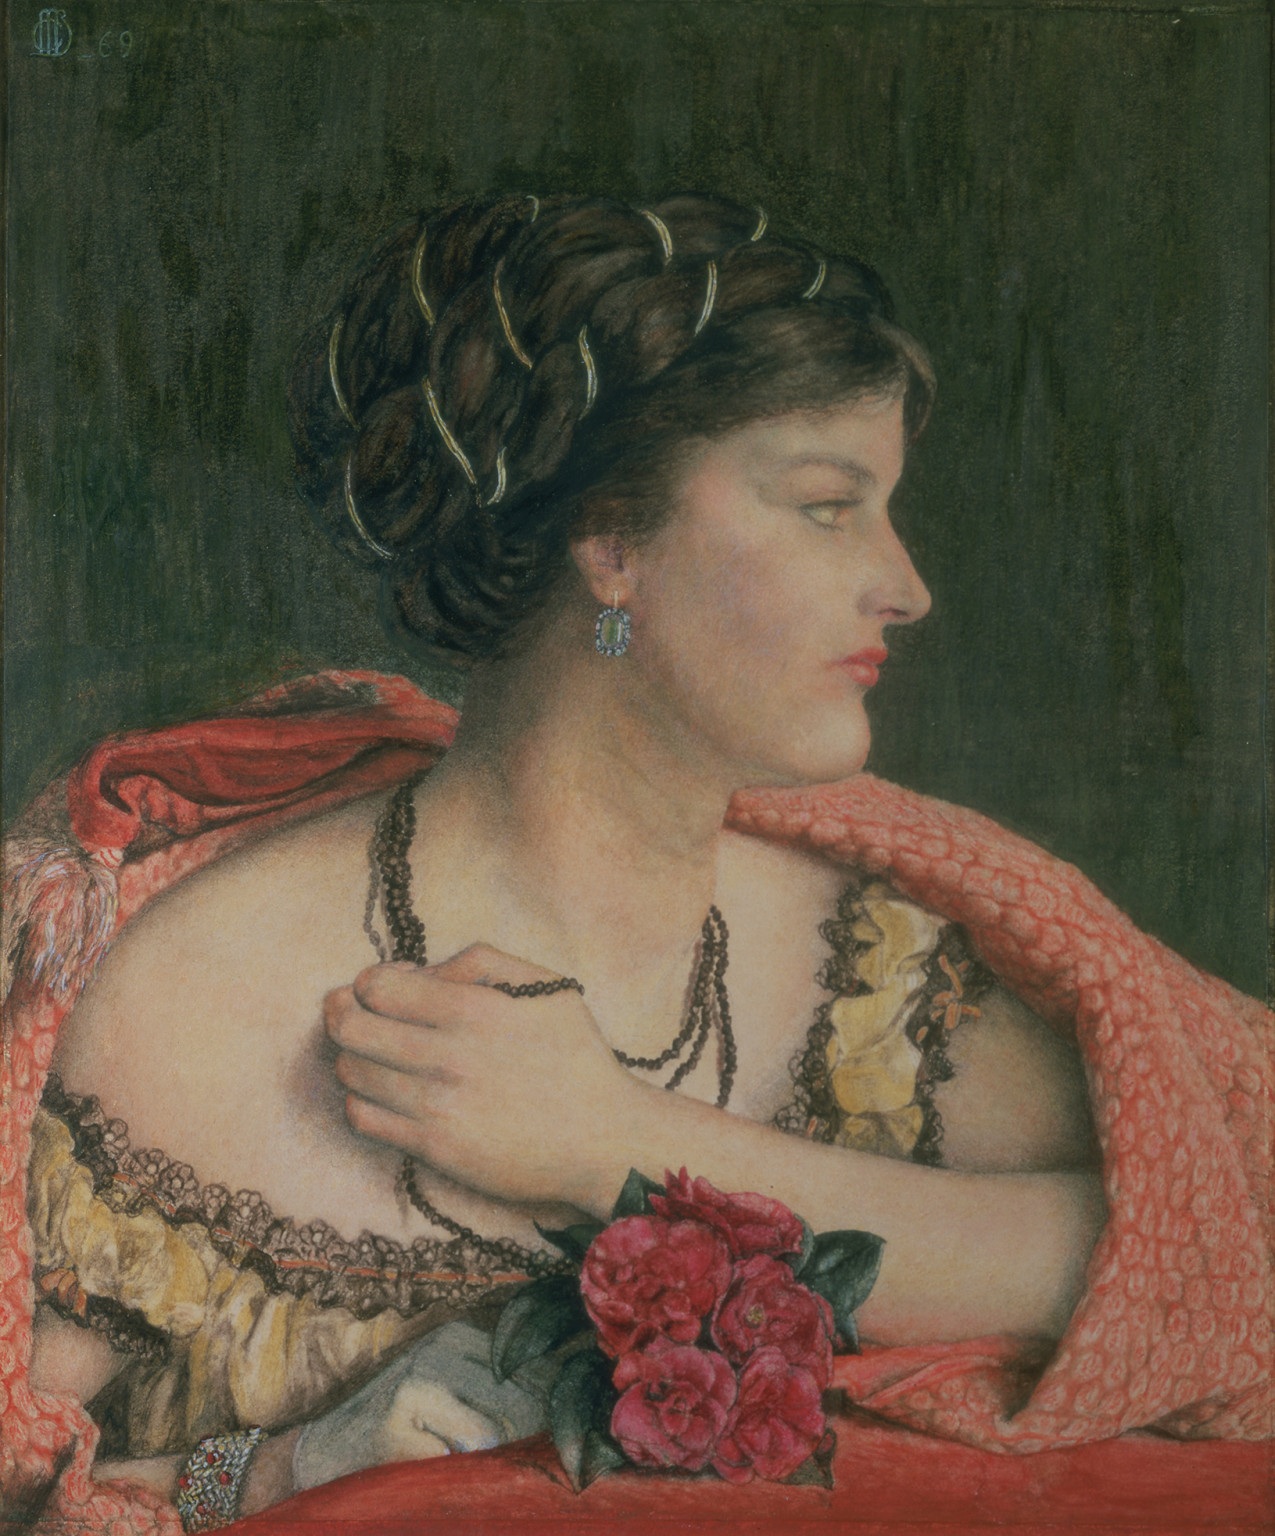 Catherine Hueffer, At the Opera, 1869, Watercolour and pencil, heightened with white, on paper, Private Collection